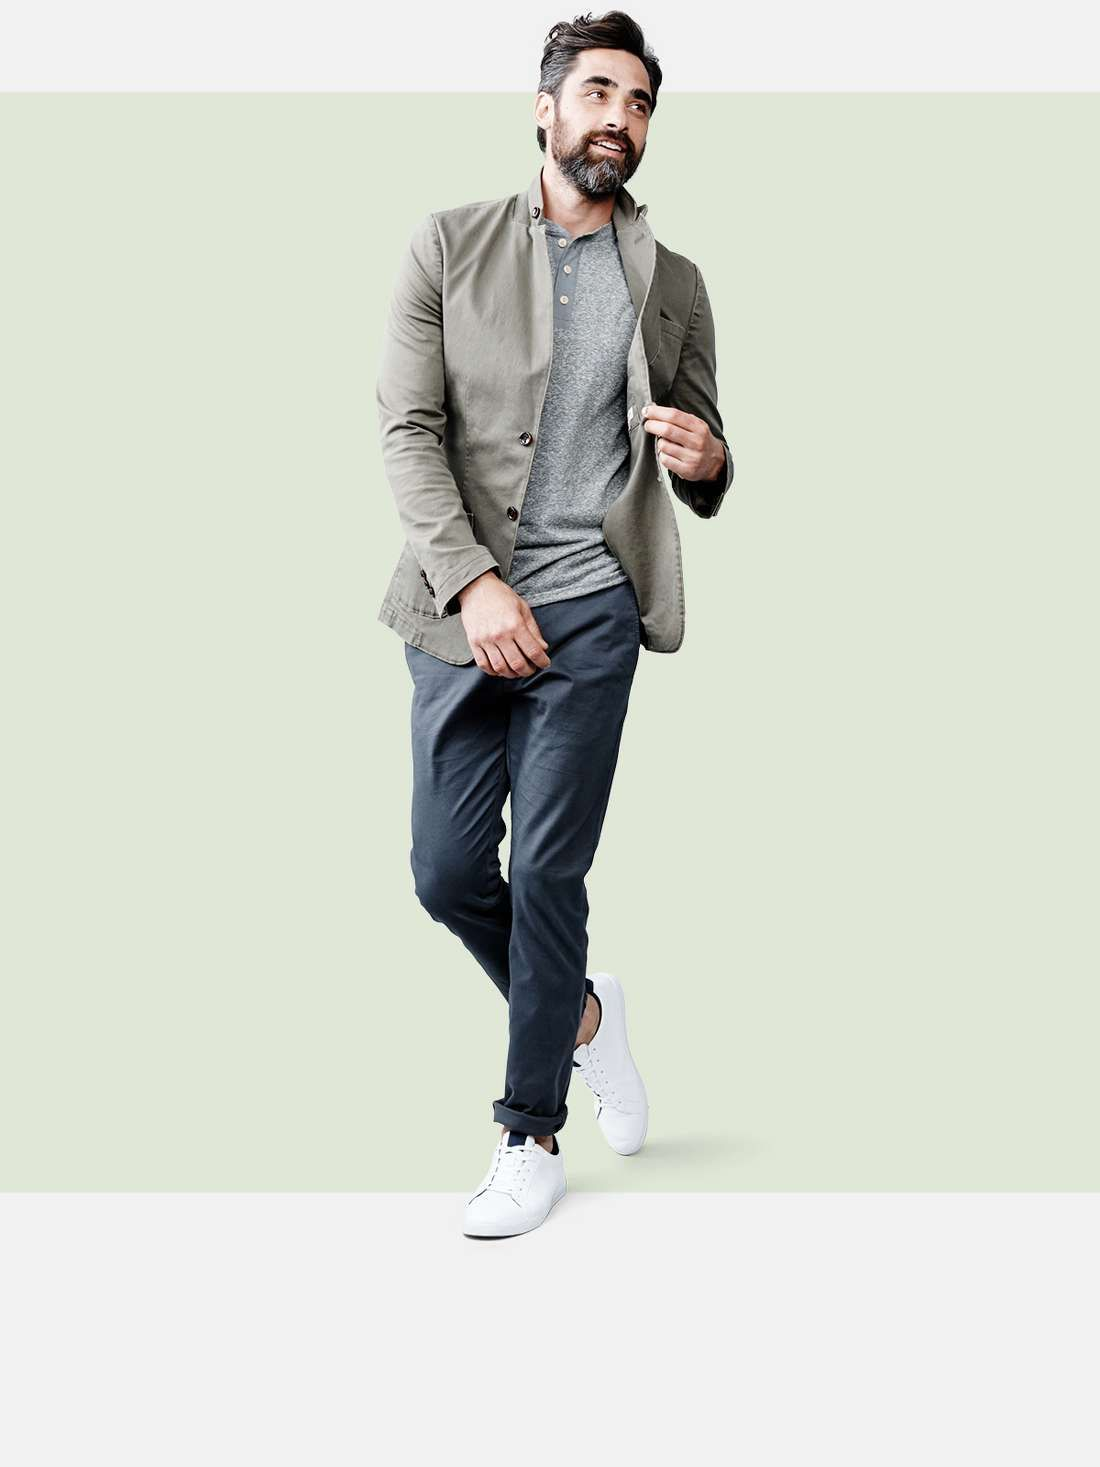 0f9577d2cfed Target's New Men's Line Goodfellow & Co.: Fitting Room First Impressions